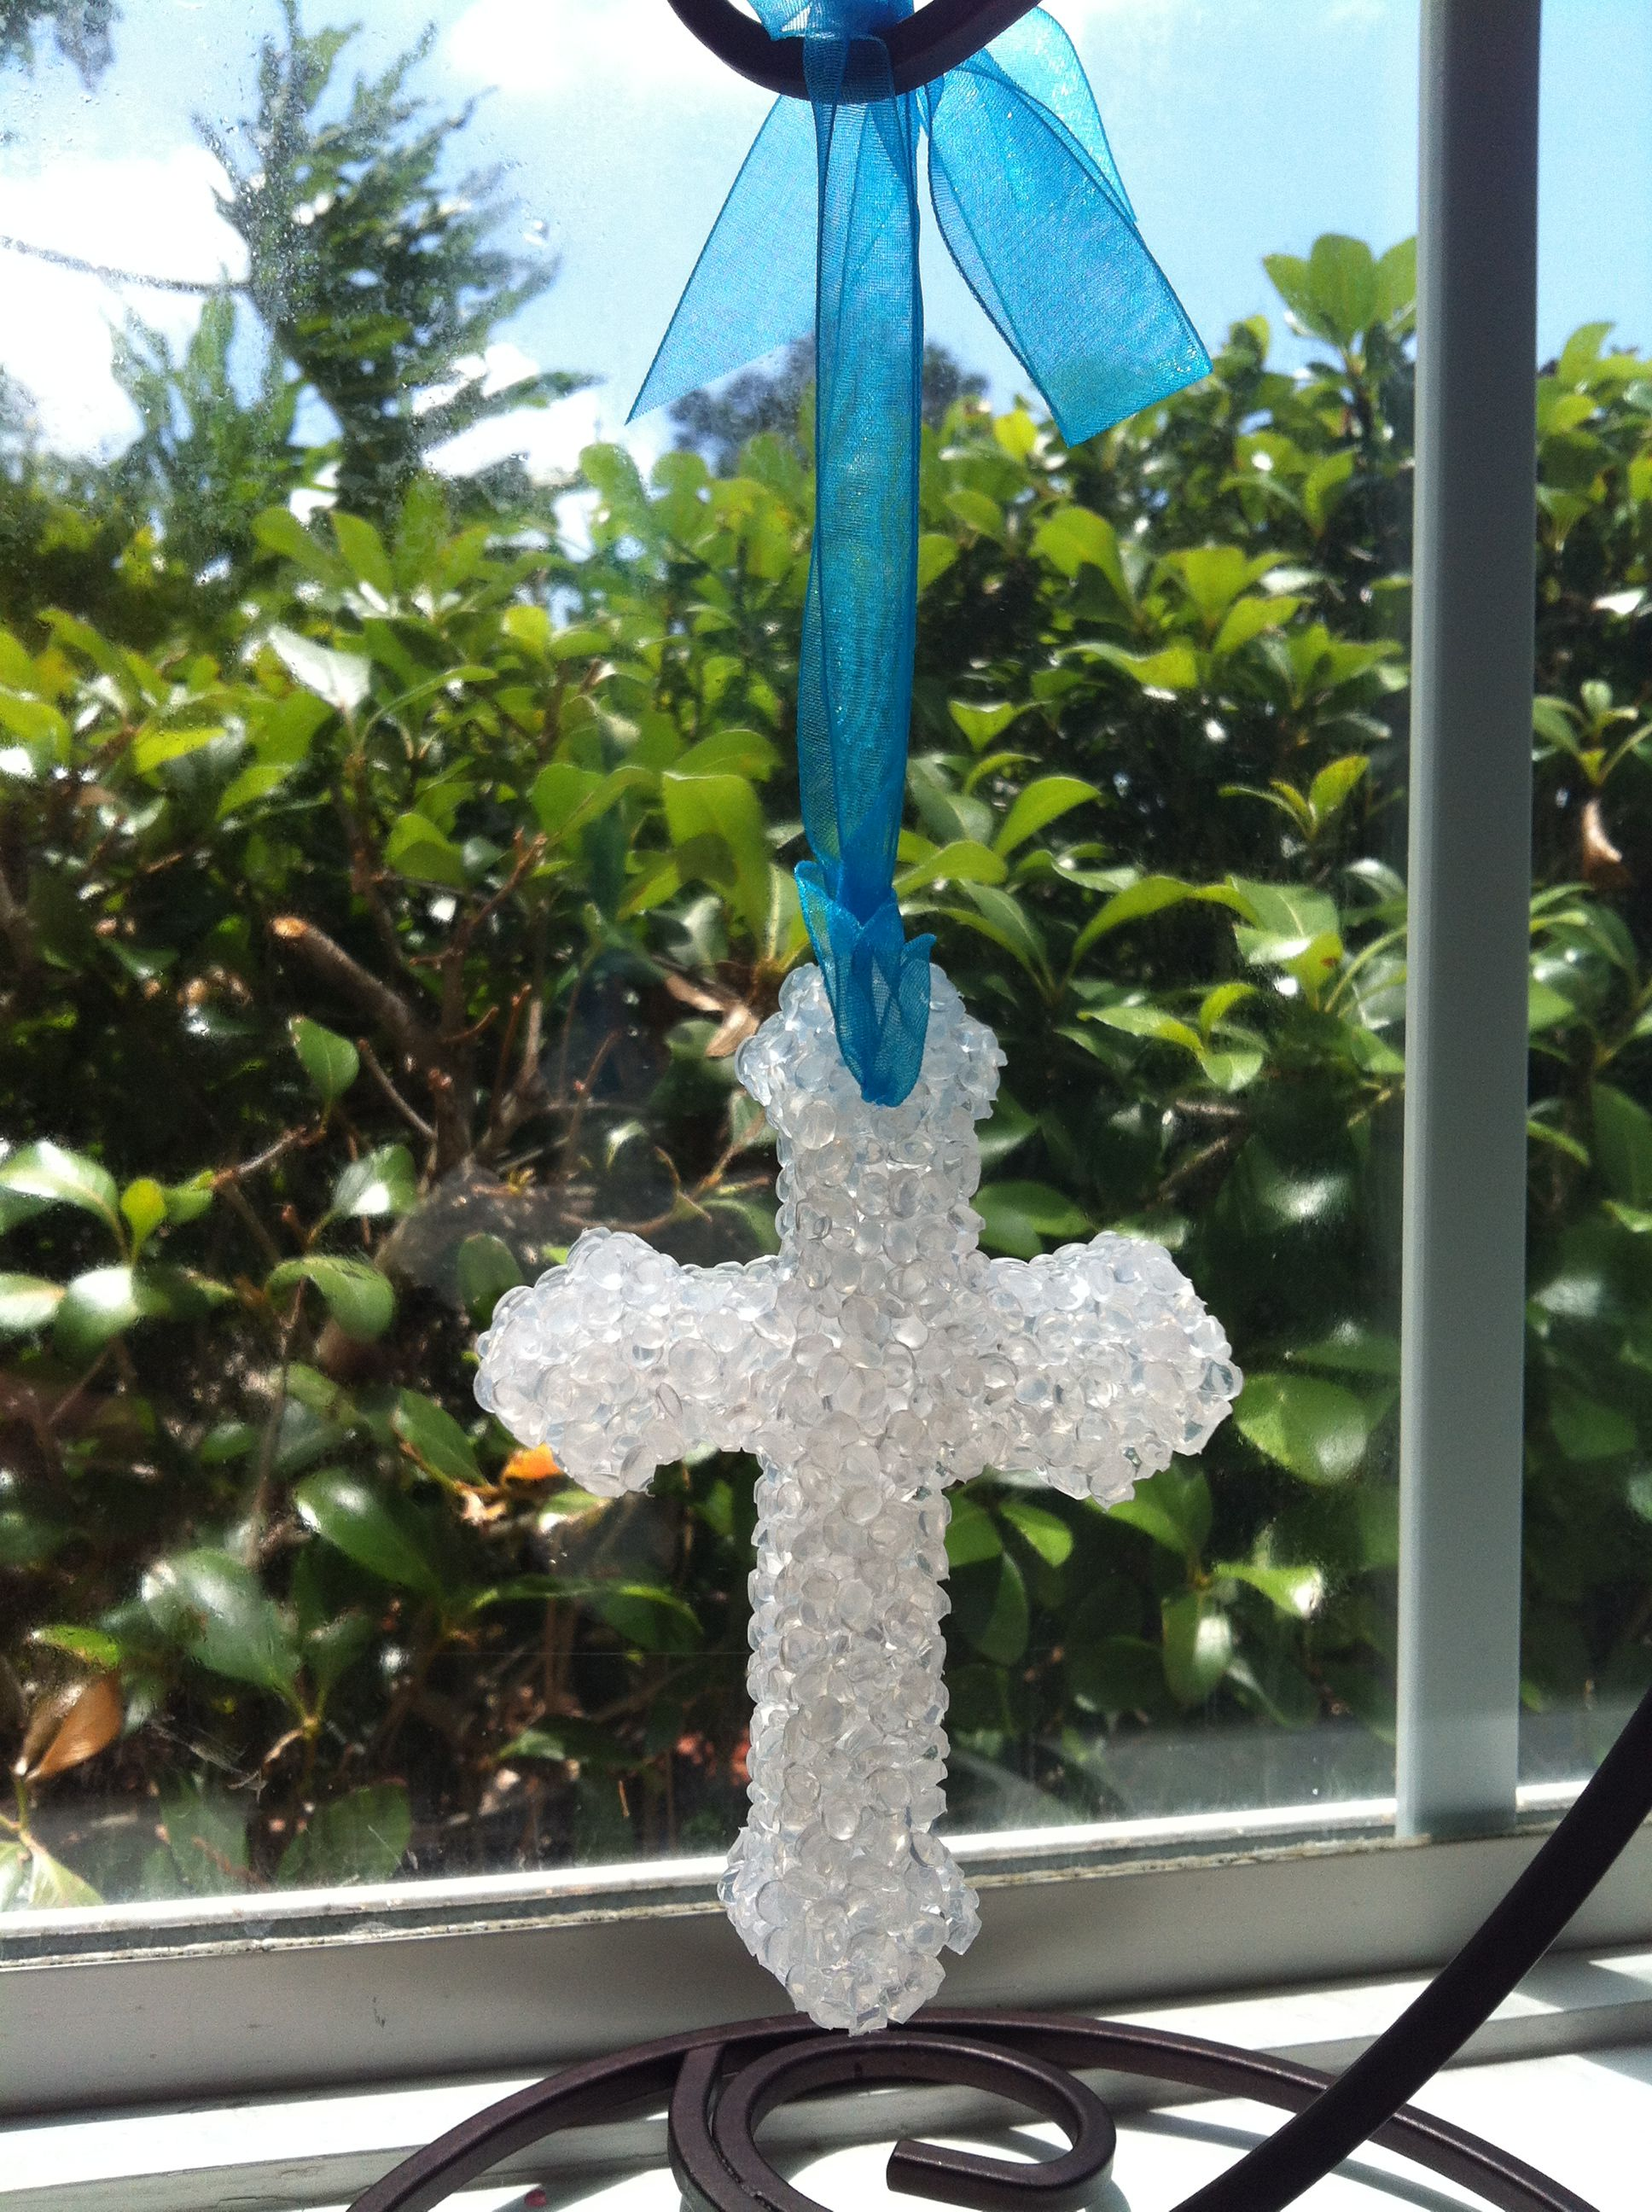 White cross aroma bead air freshener with teal ribbon